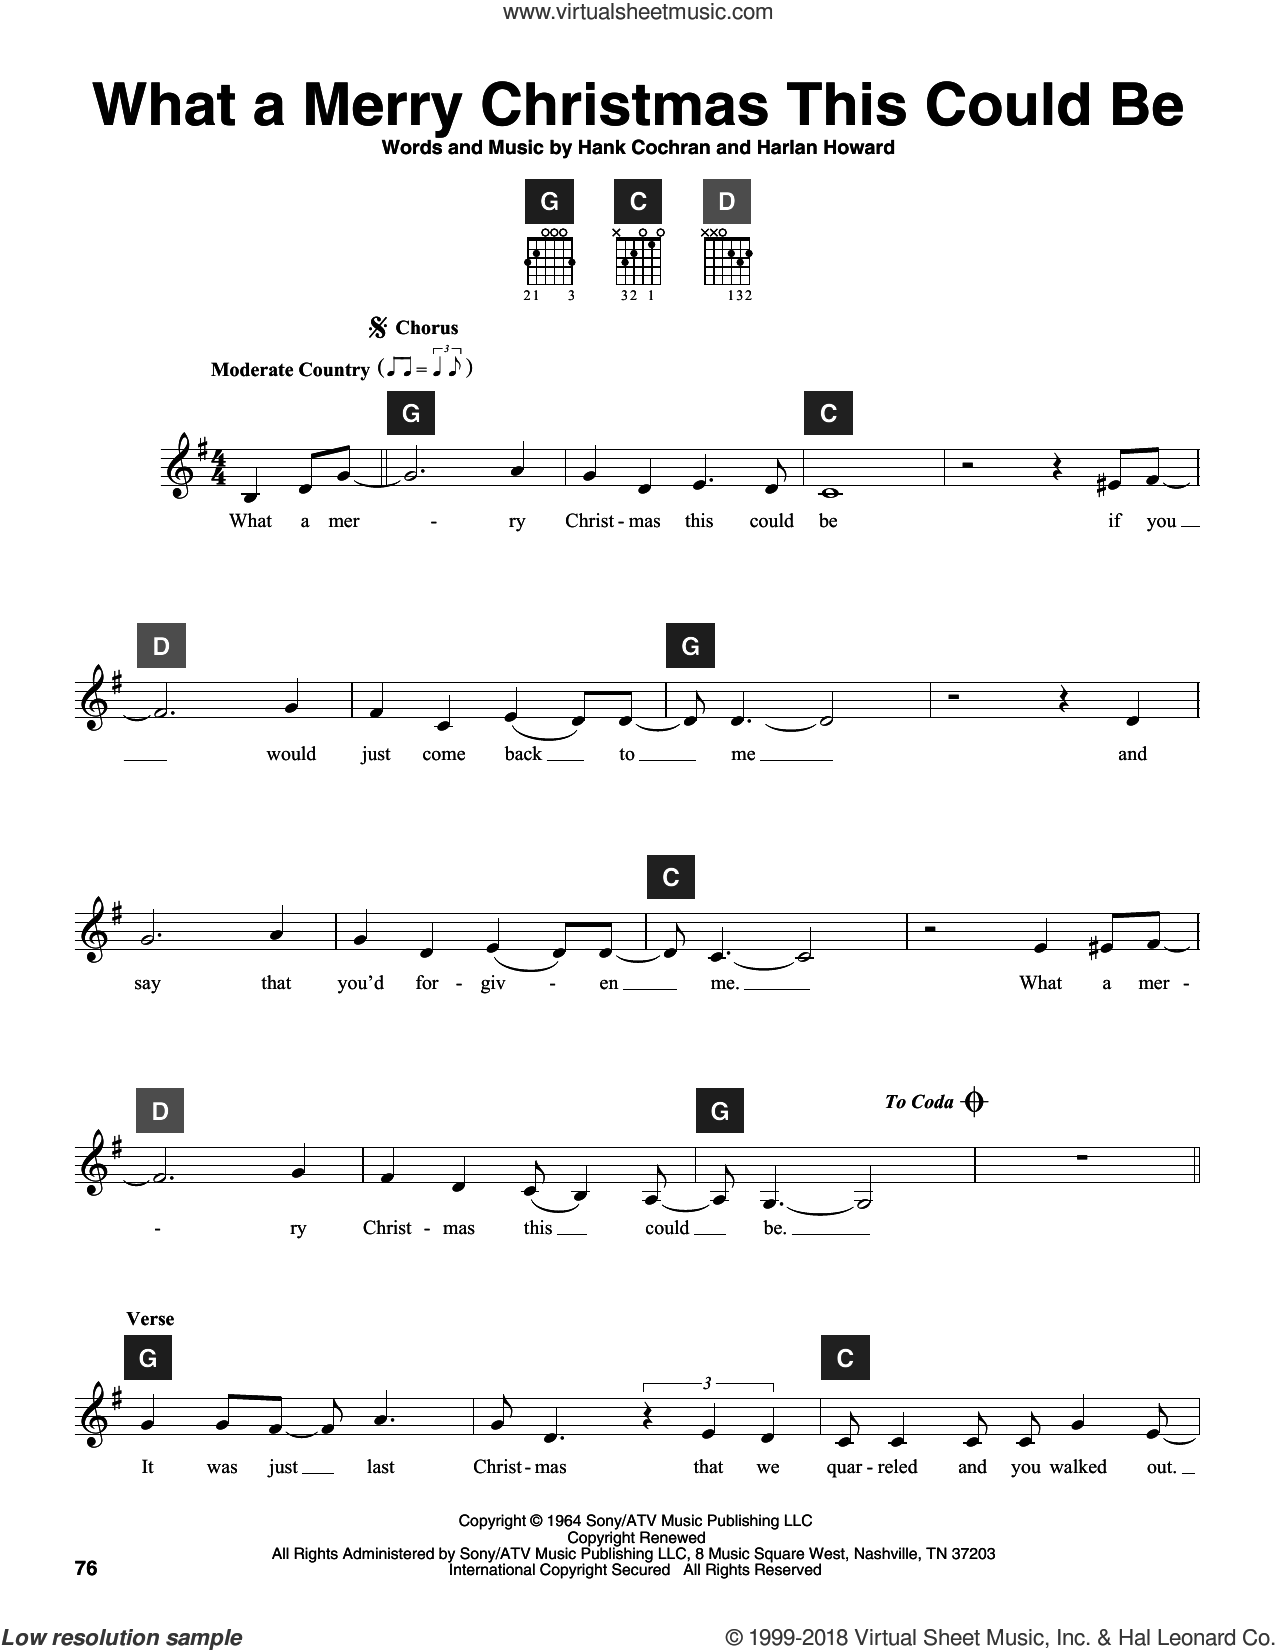 What A Merry Christmas This Could Be sheet music for guitar solo (ChordBuddy system) by Hank Cochran, George Strait and Harlan Howard. Score Image Preview.